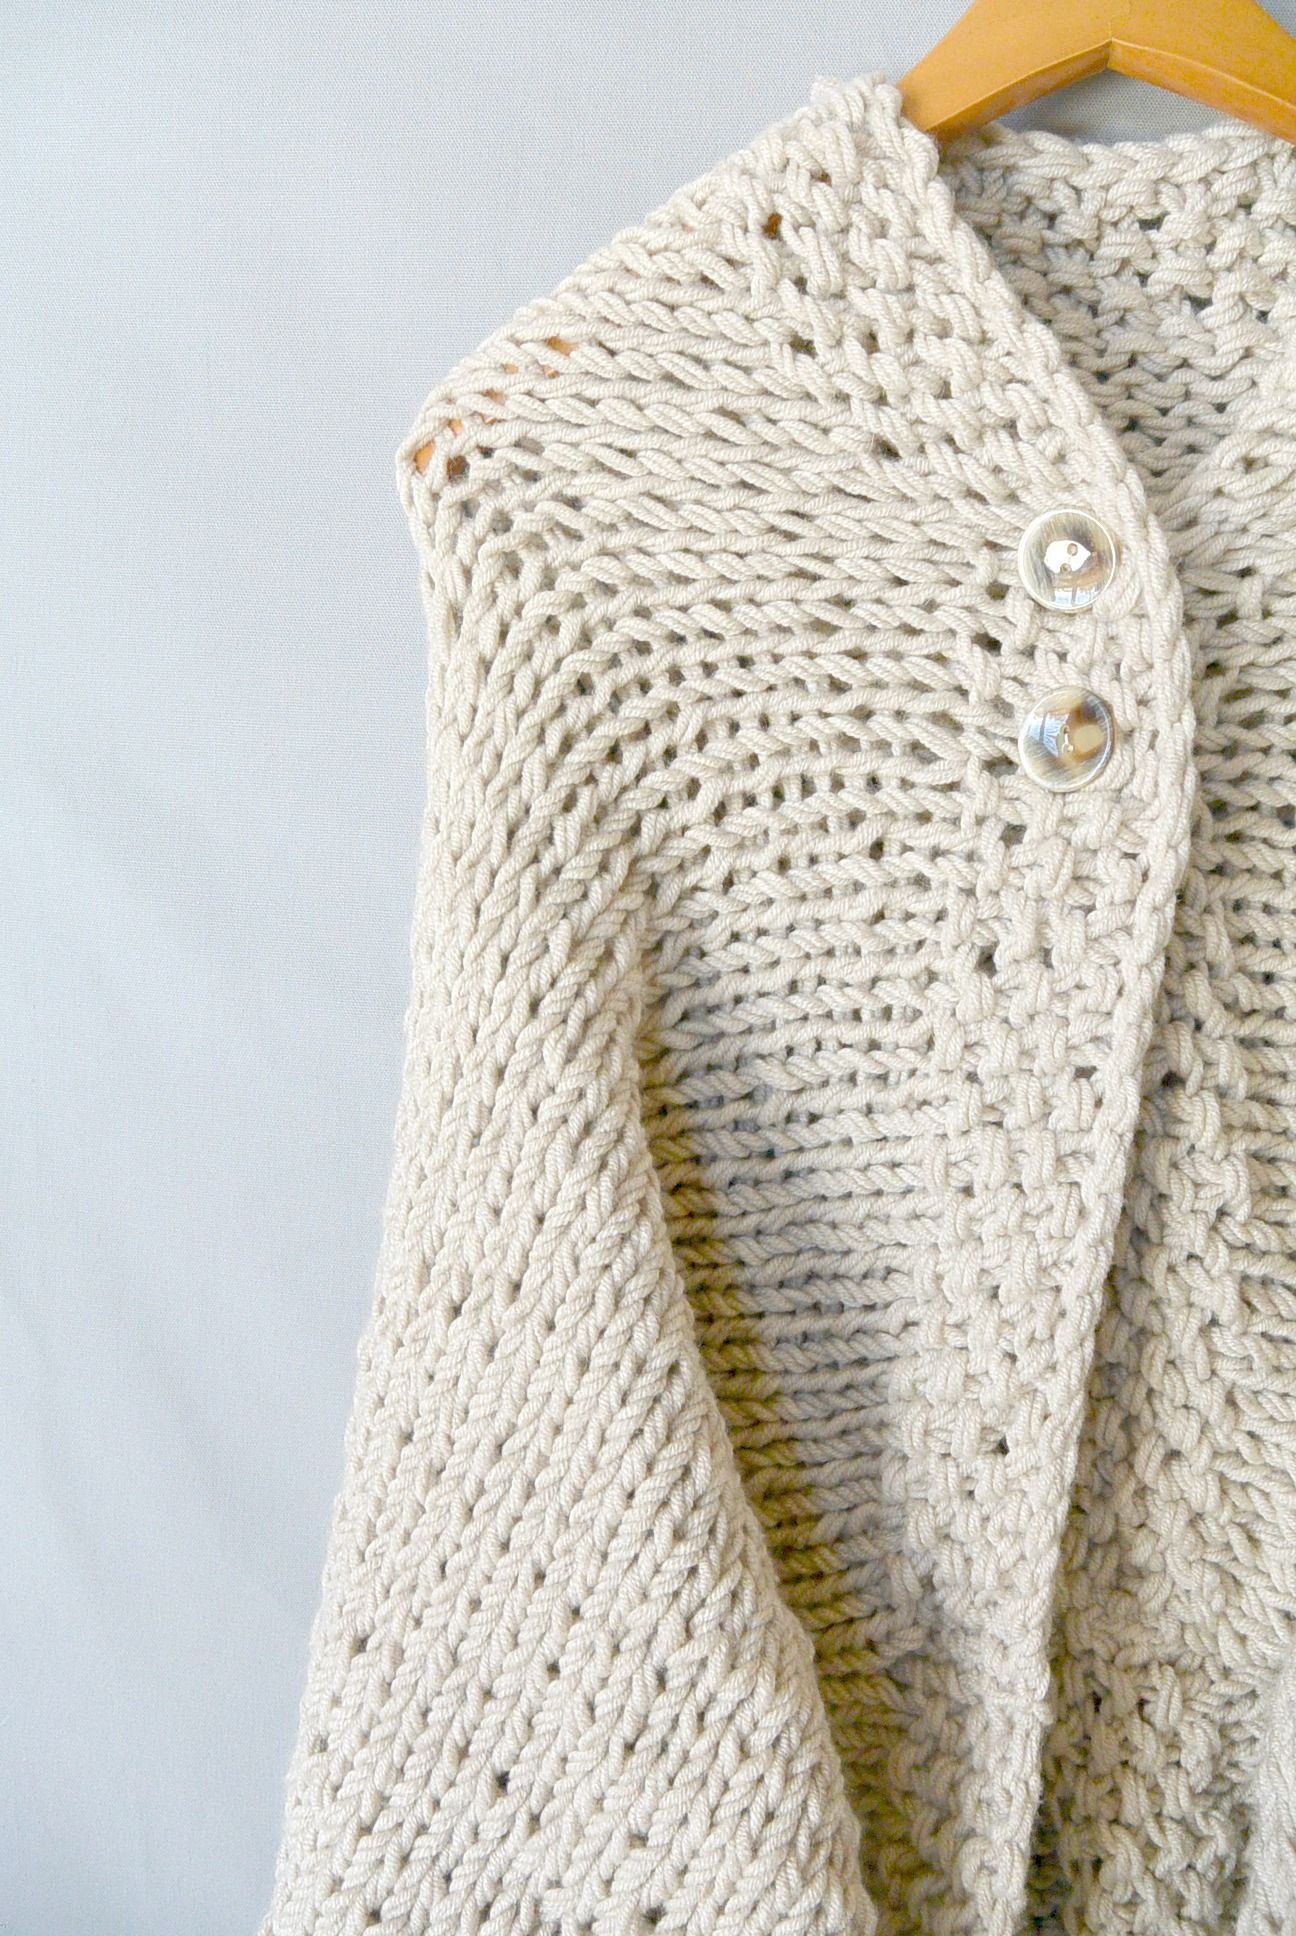 easy-blanket-knit-cacoon-pattern   projects   Pinterest   Blanket ...